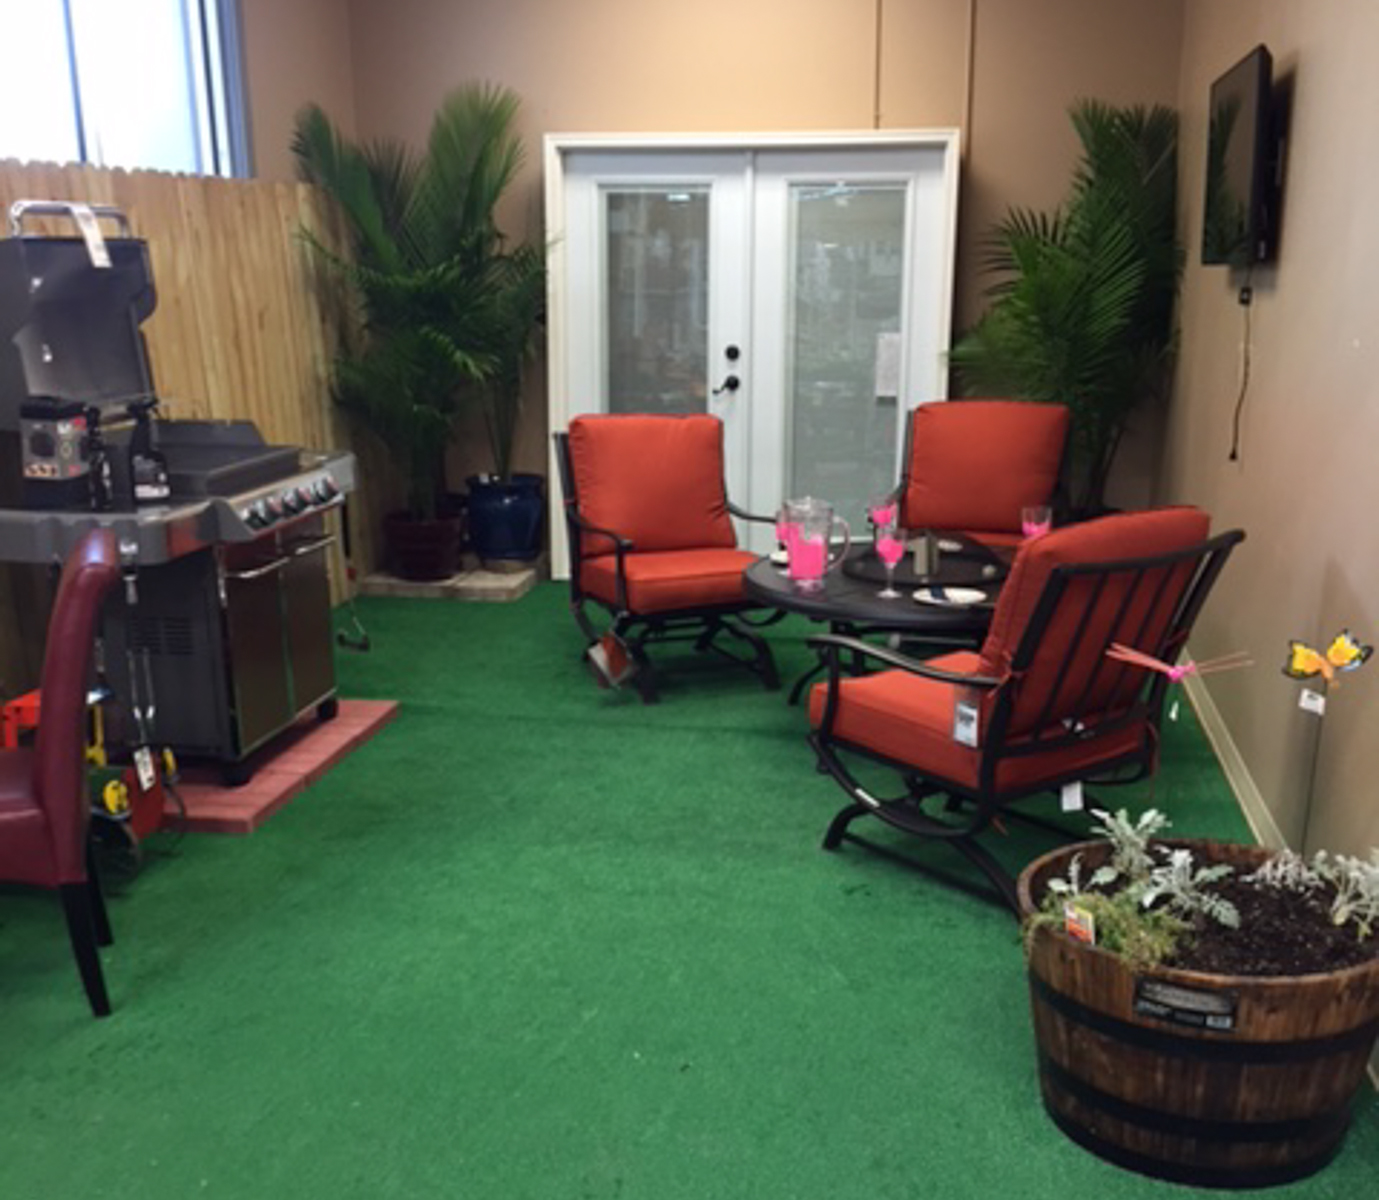 A very inviting lounge area at Home Depot.